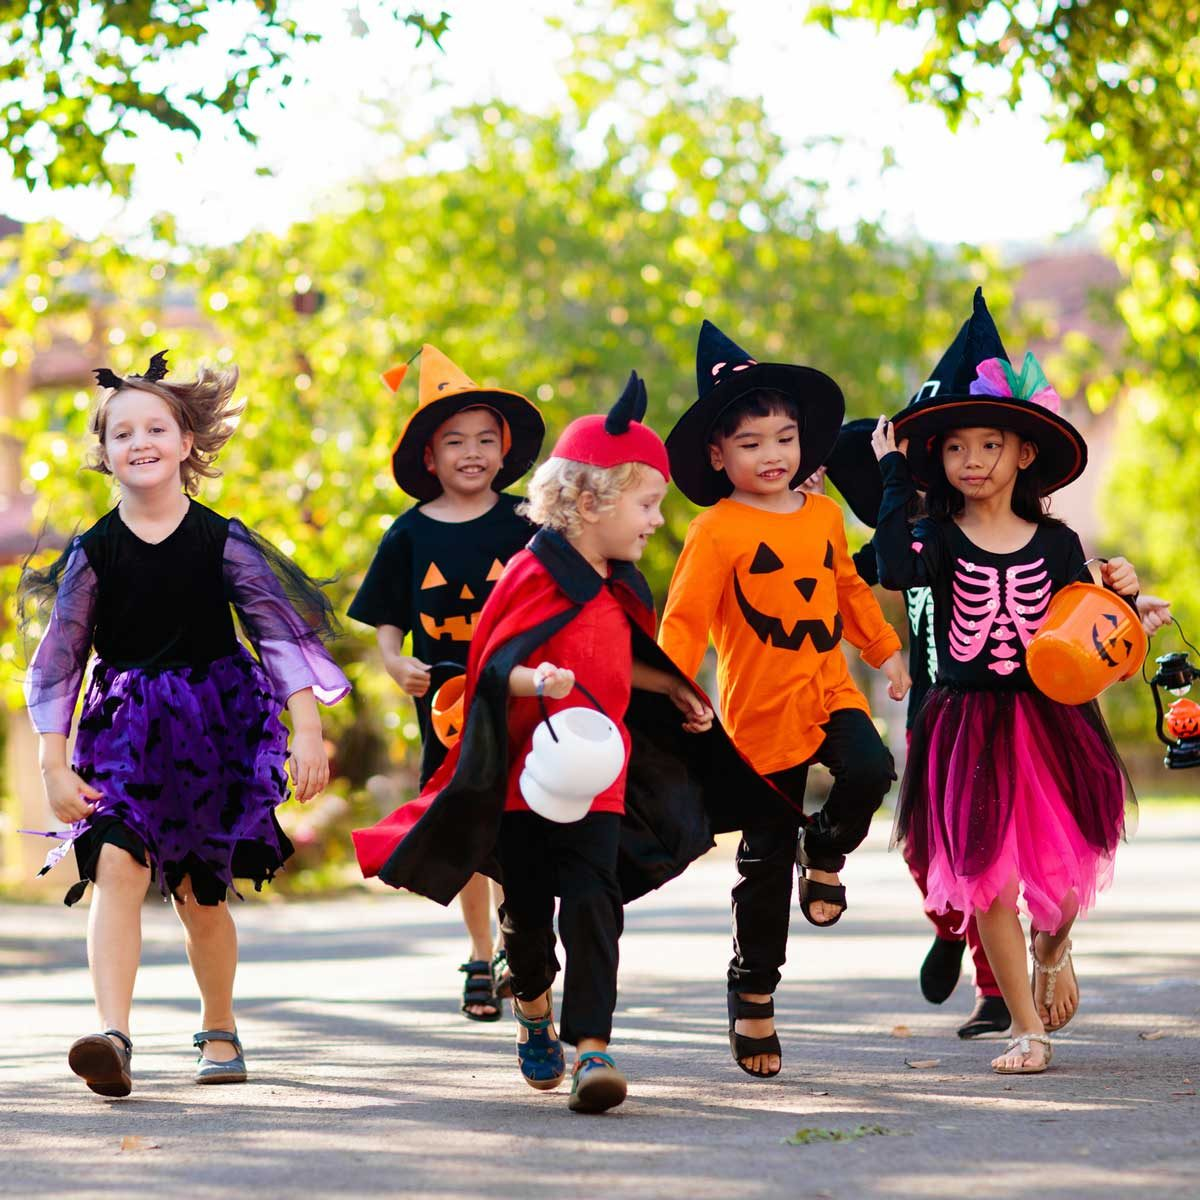 8 Best Halloween Costume Ideas for Kids